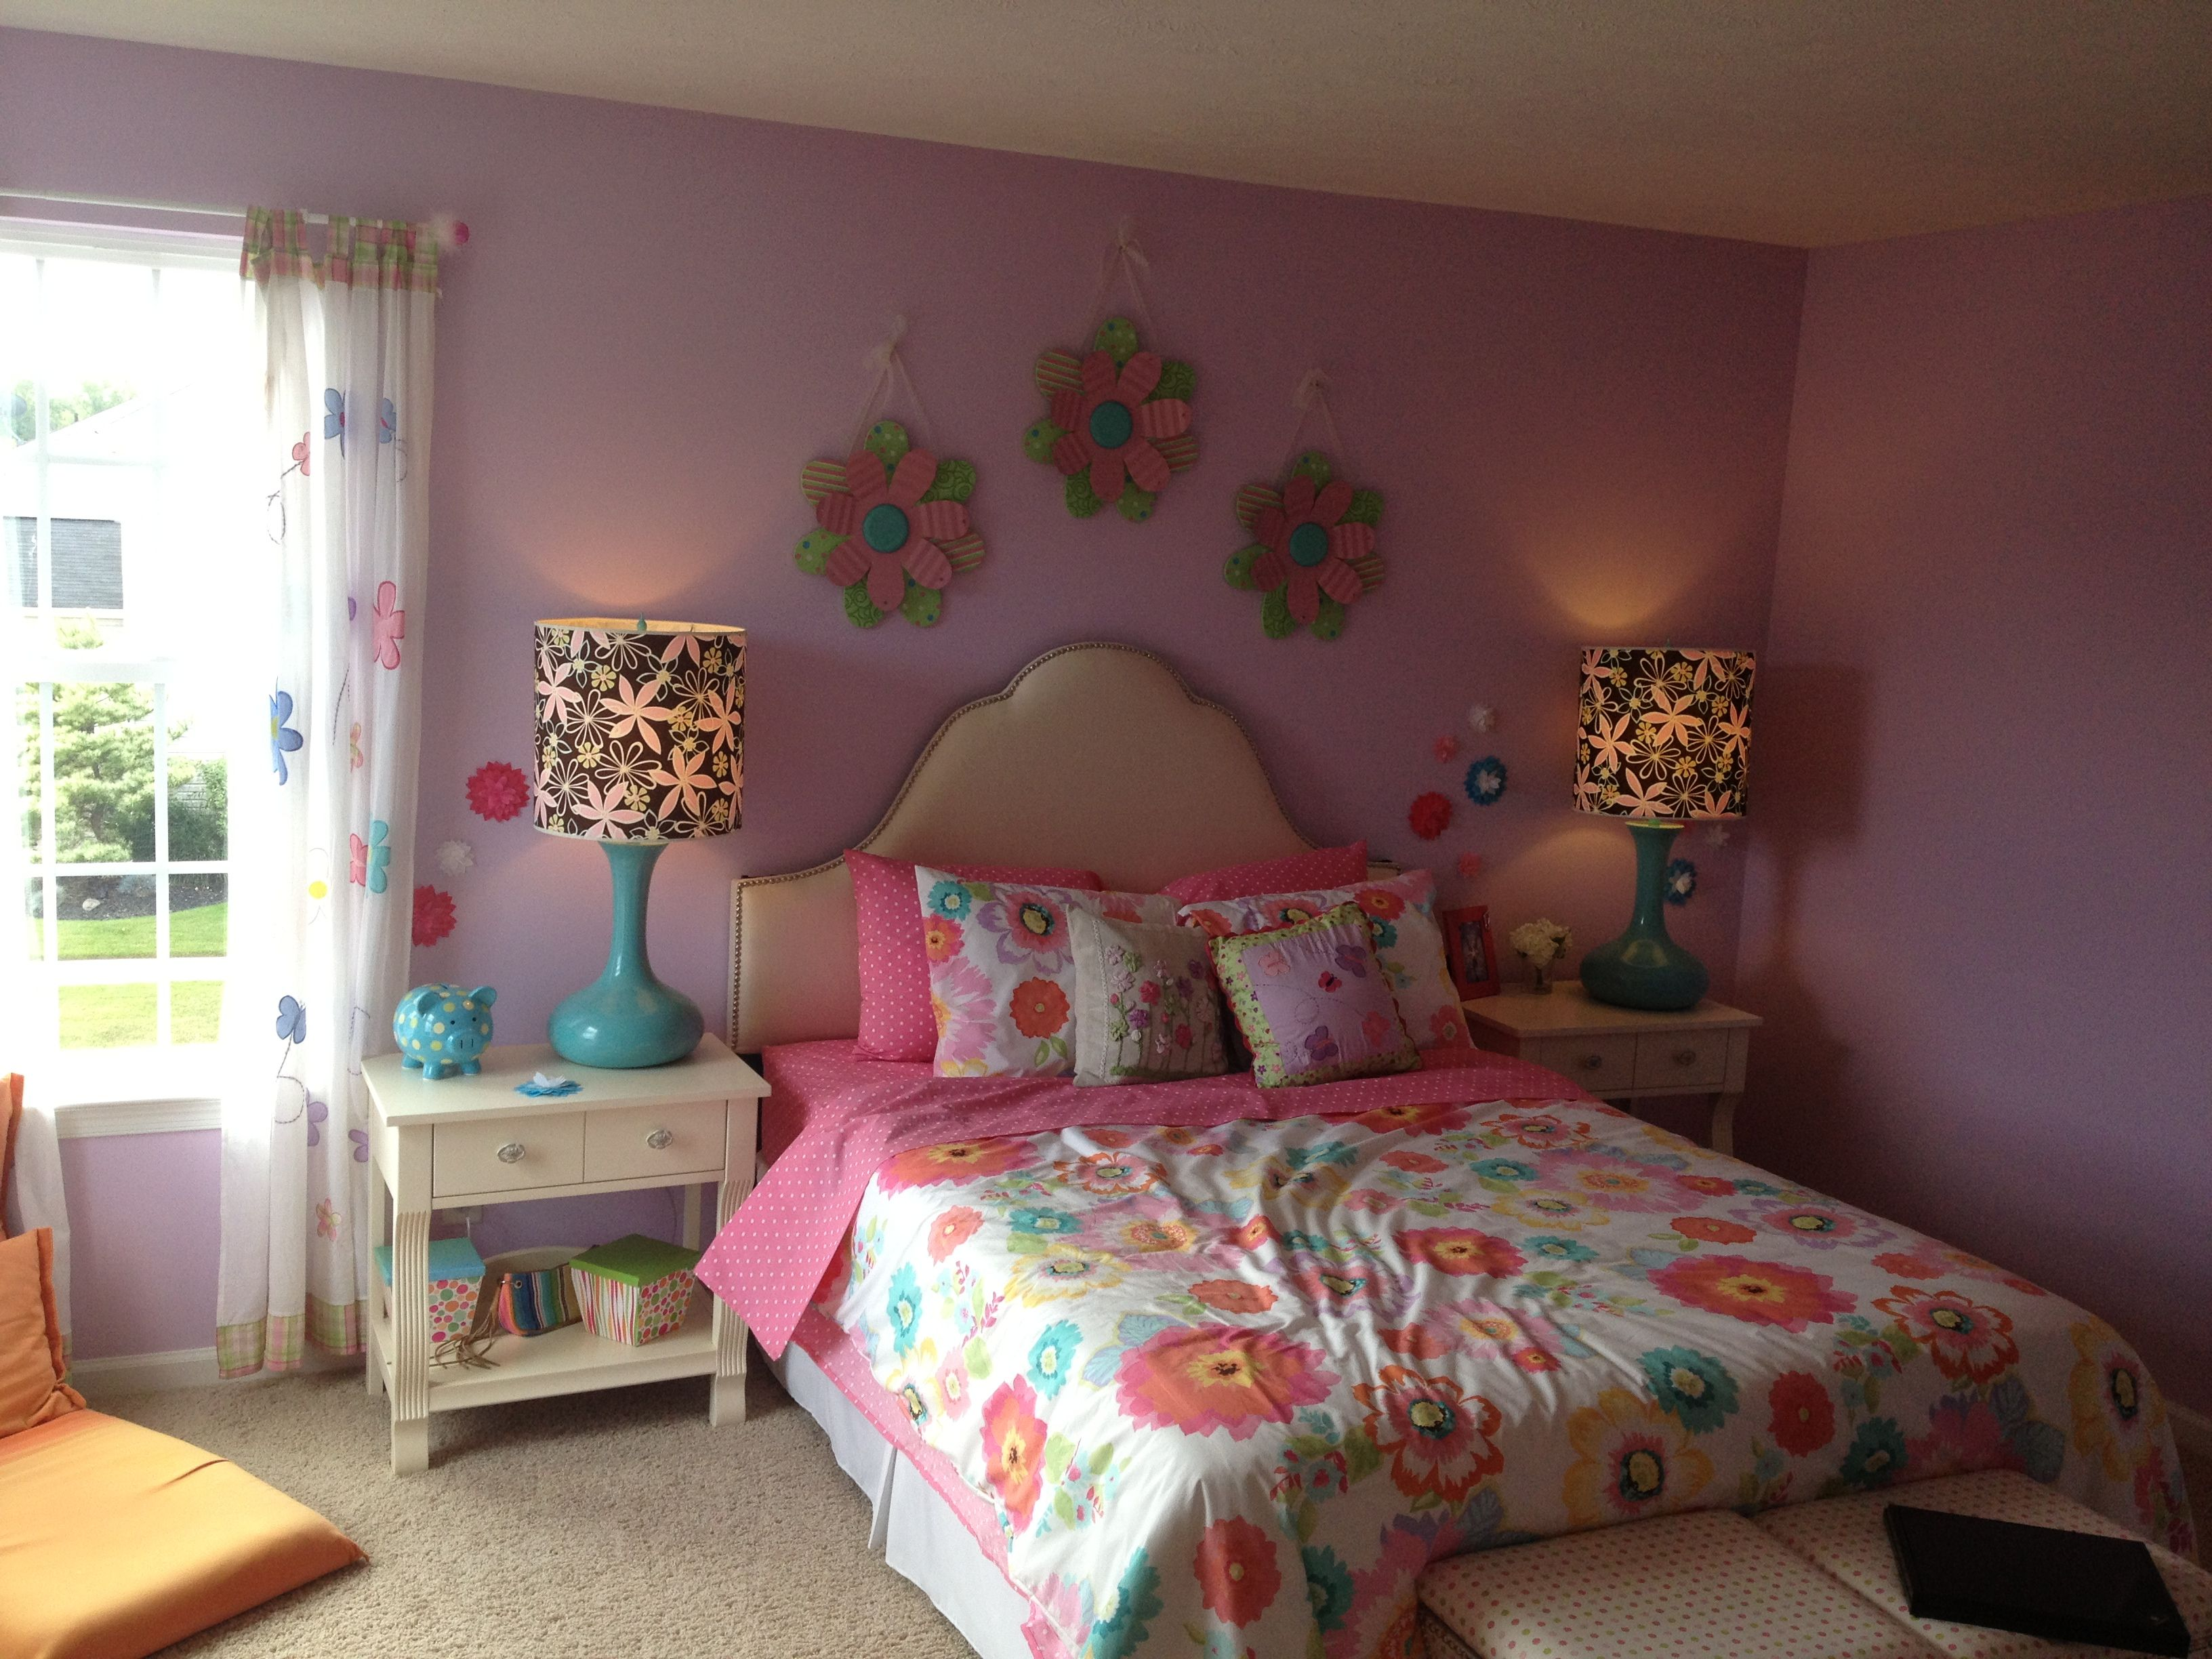 Inspiration For Our Year Old Girls Room Building Our Home - 10 year old bedroom designs